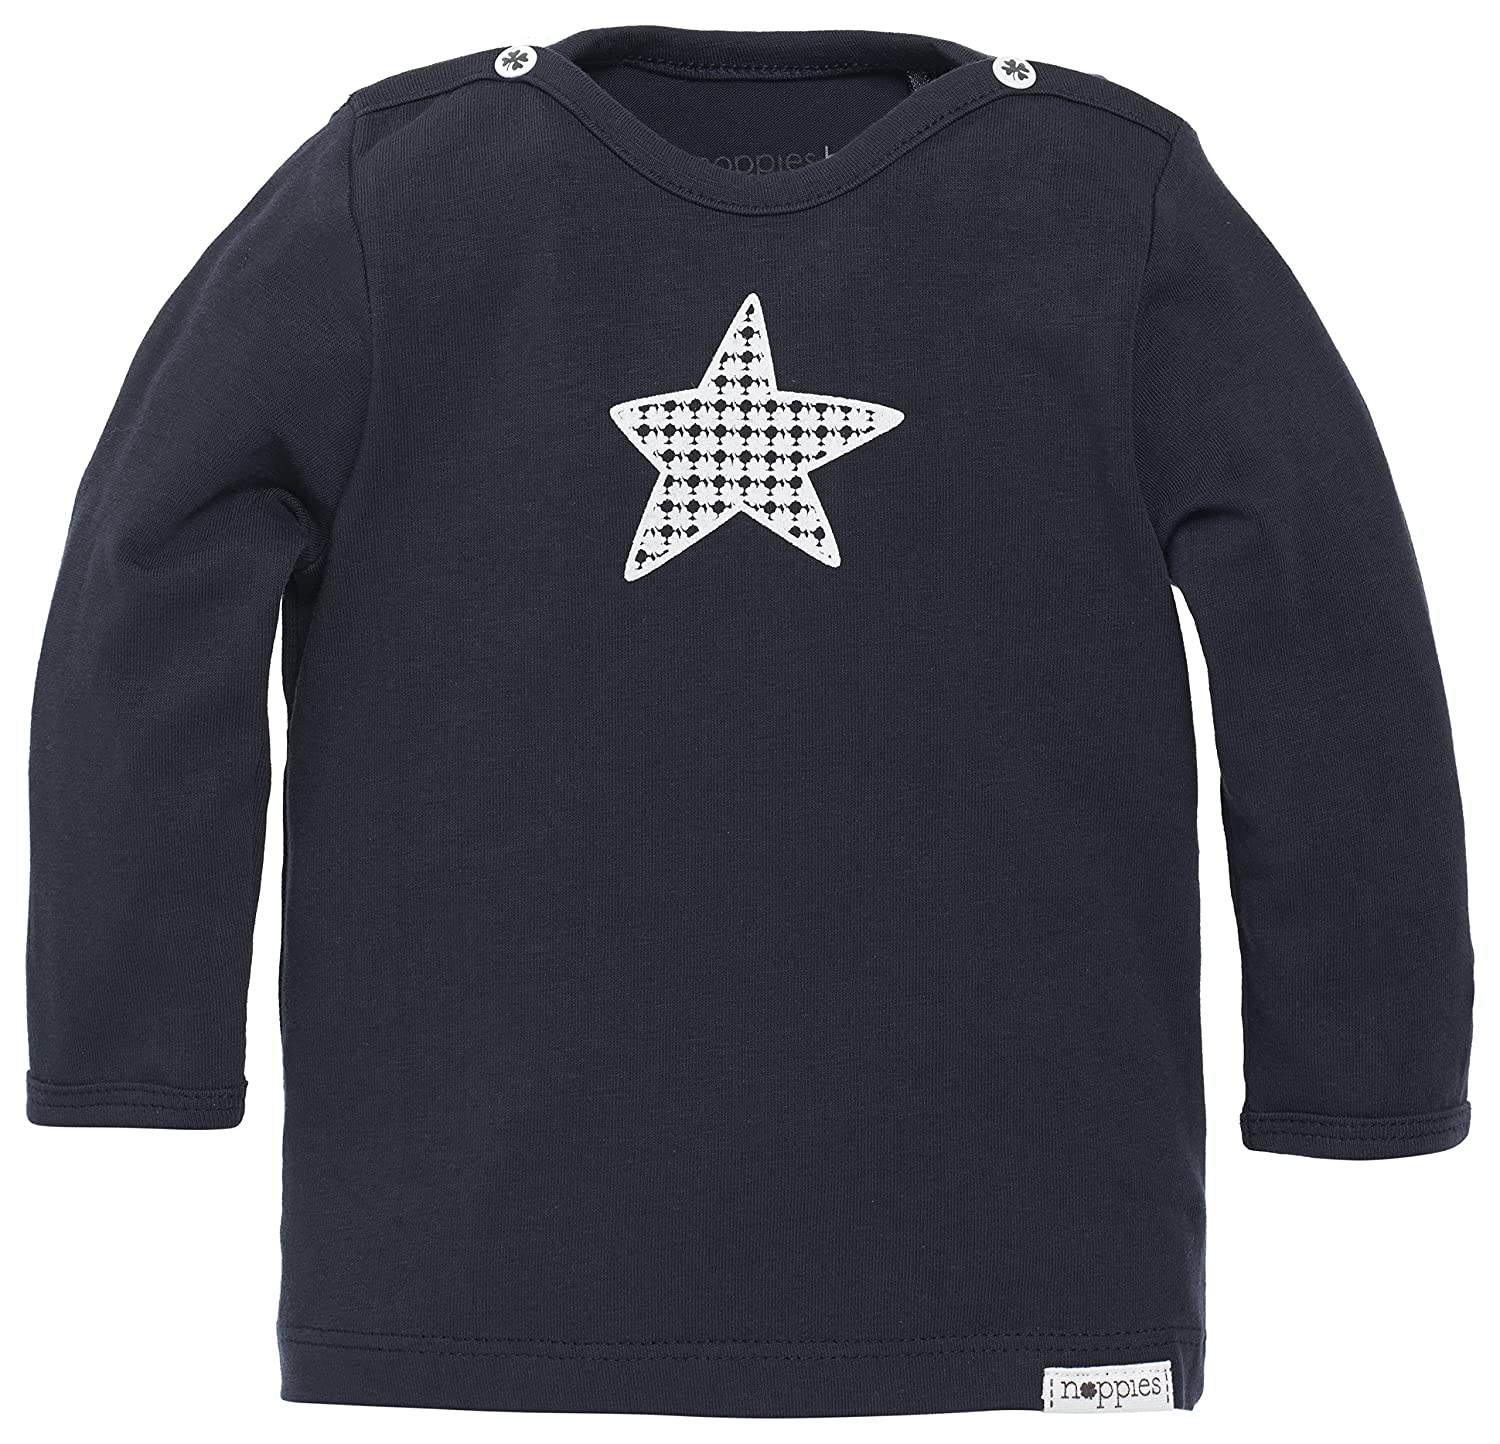 Noppies Baby-Boys B Long Sleeve Monsieur Polo Shirt